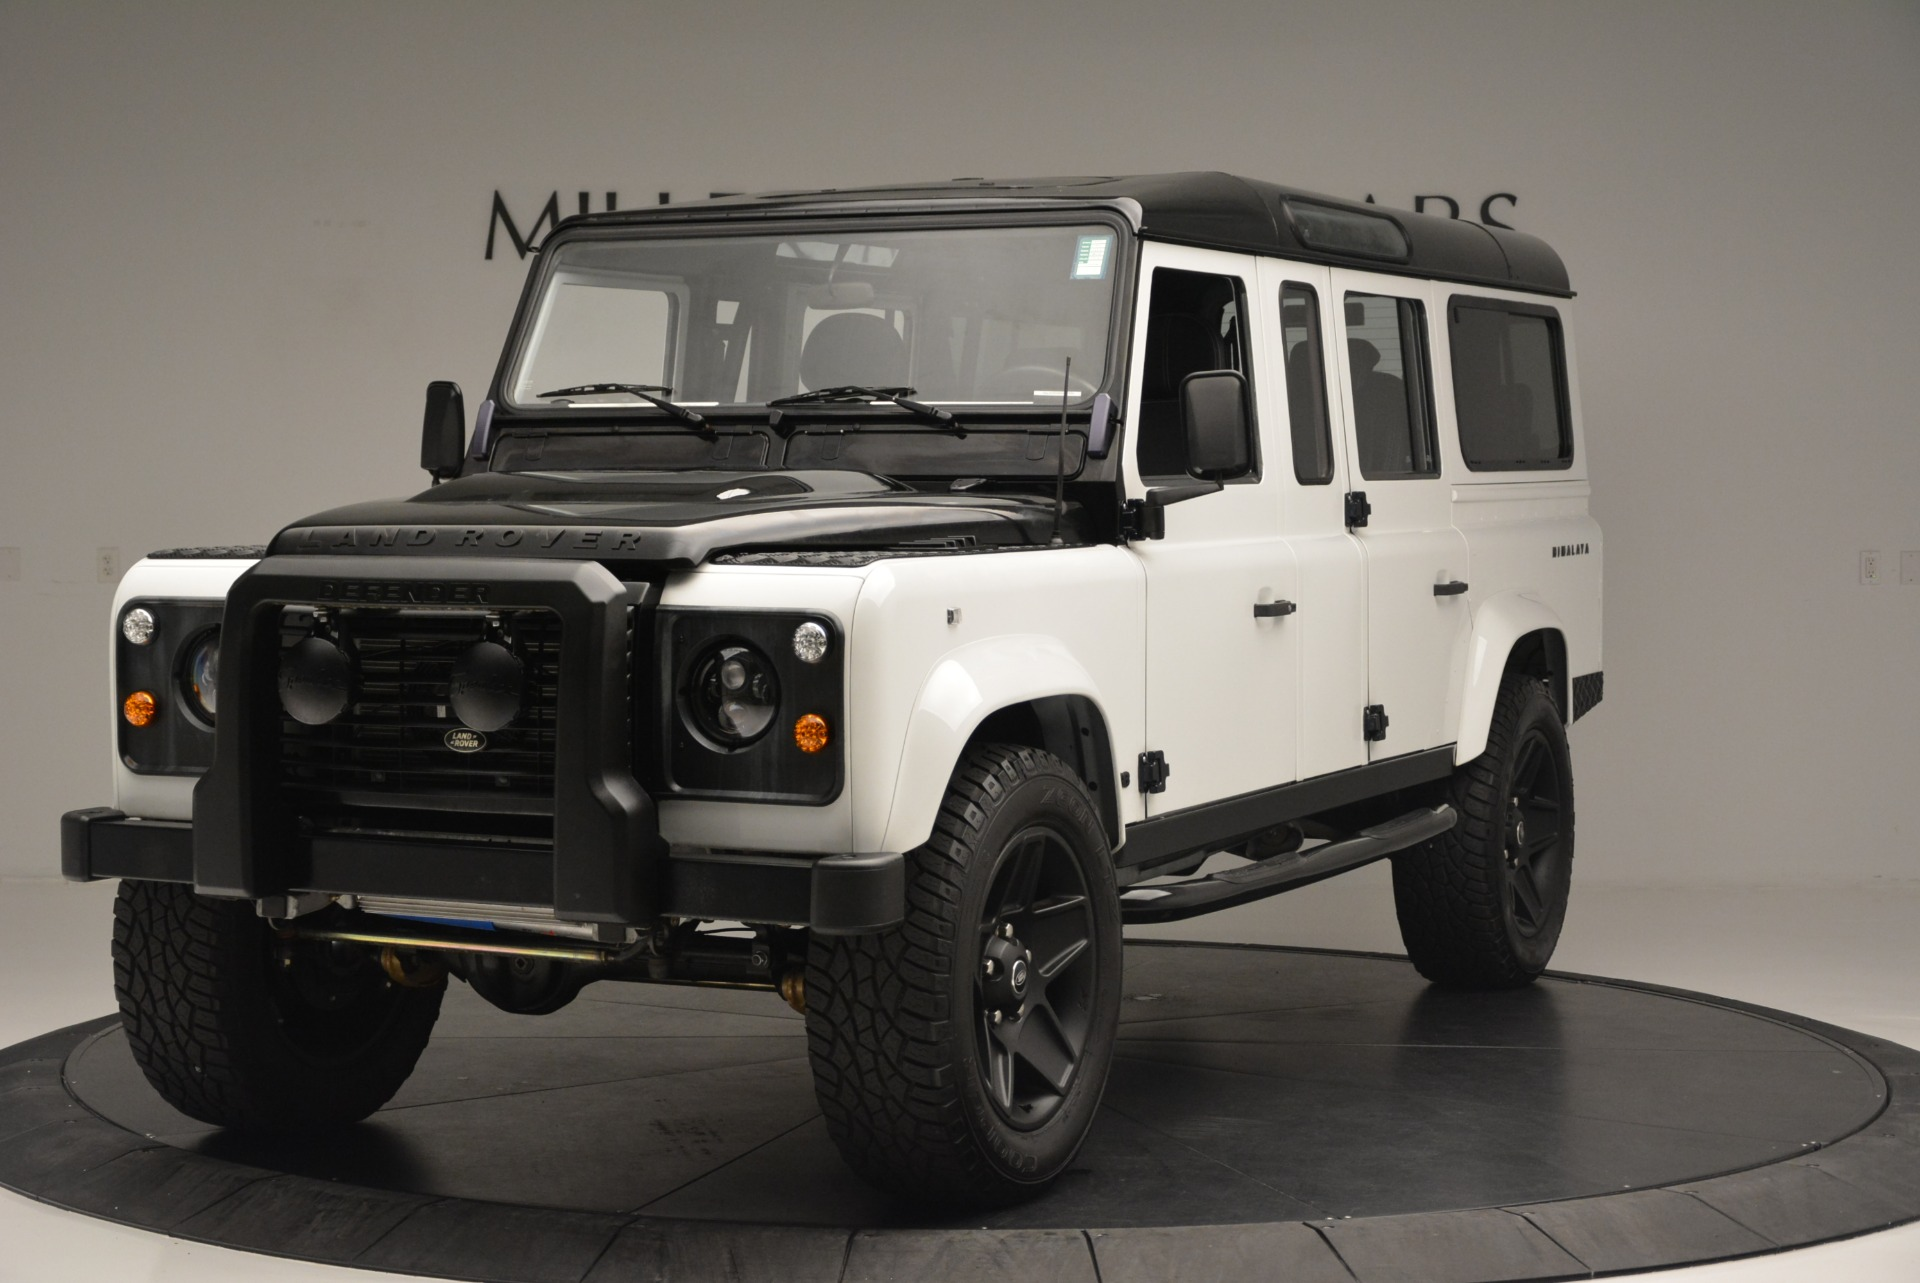 Used 1994 Land Rover Defender 130 Himalaya for sale Sold at Aston Martin of Greenwich in Greenwich CT 06830 1